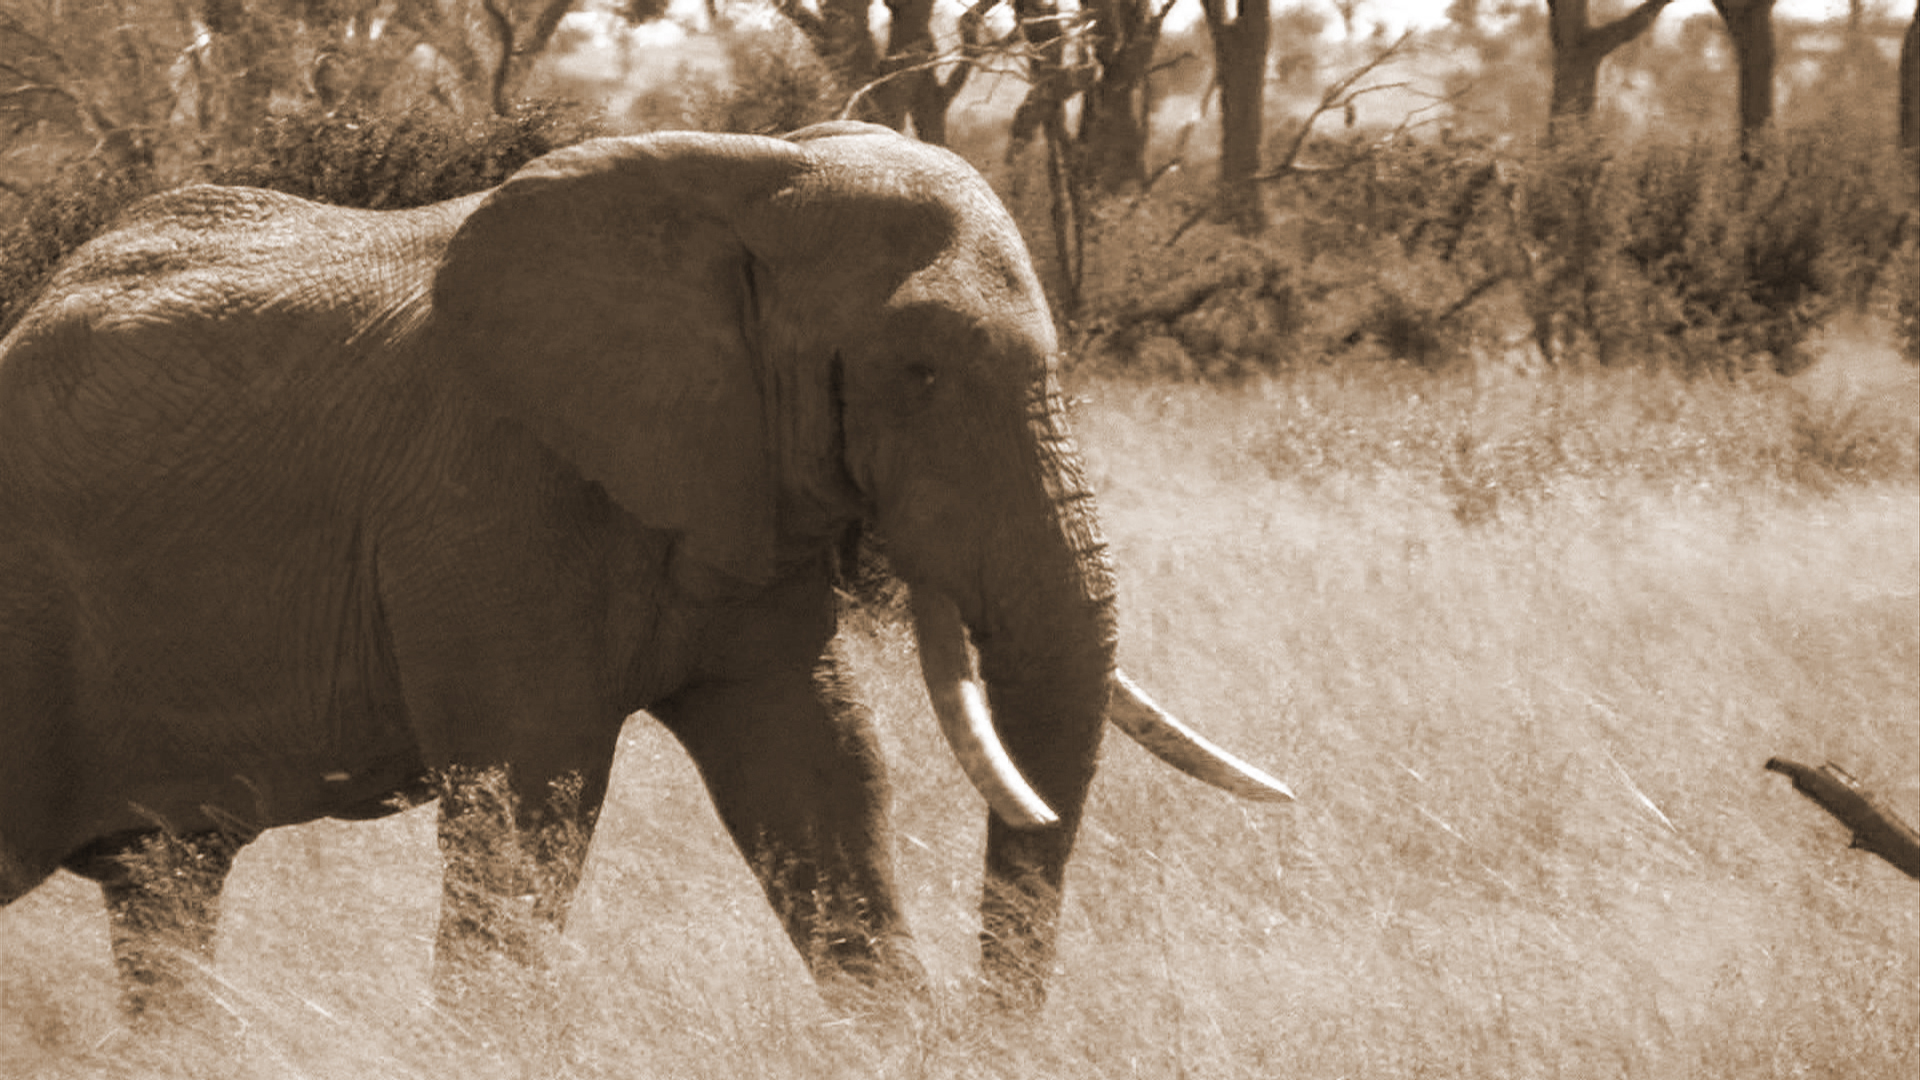 Benefits to Elephant Conservation From Safari Hunting.